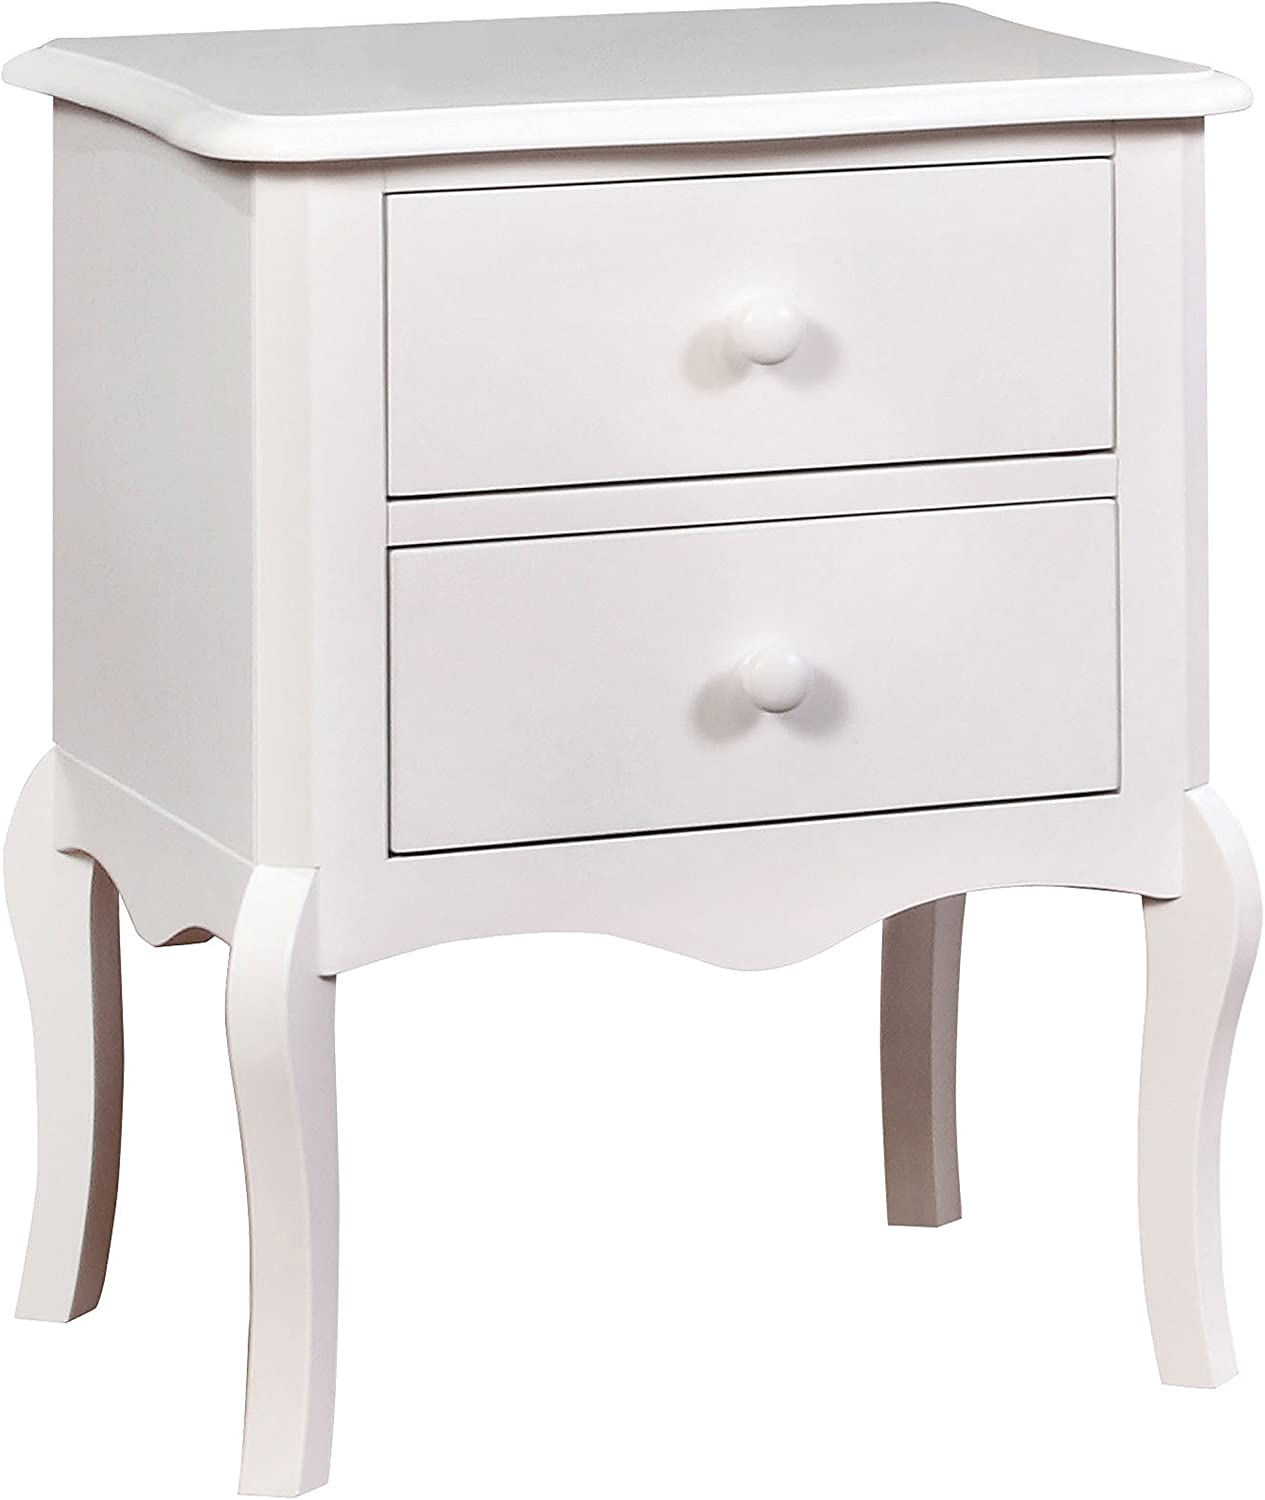 Furniture of America Carlin 2 Drawer End Table Transitional Style - White